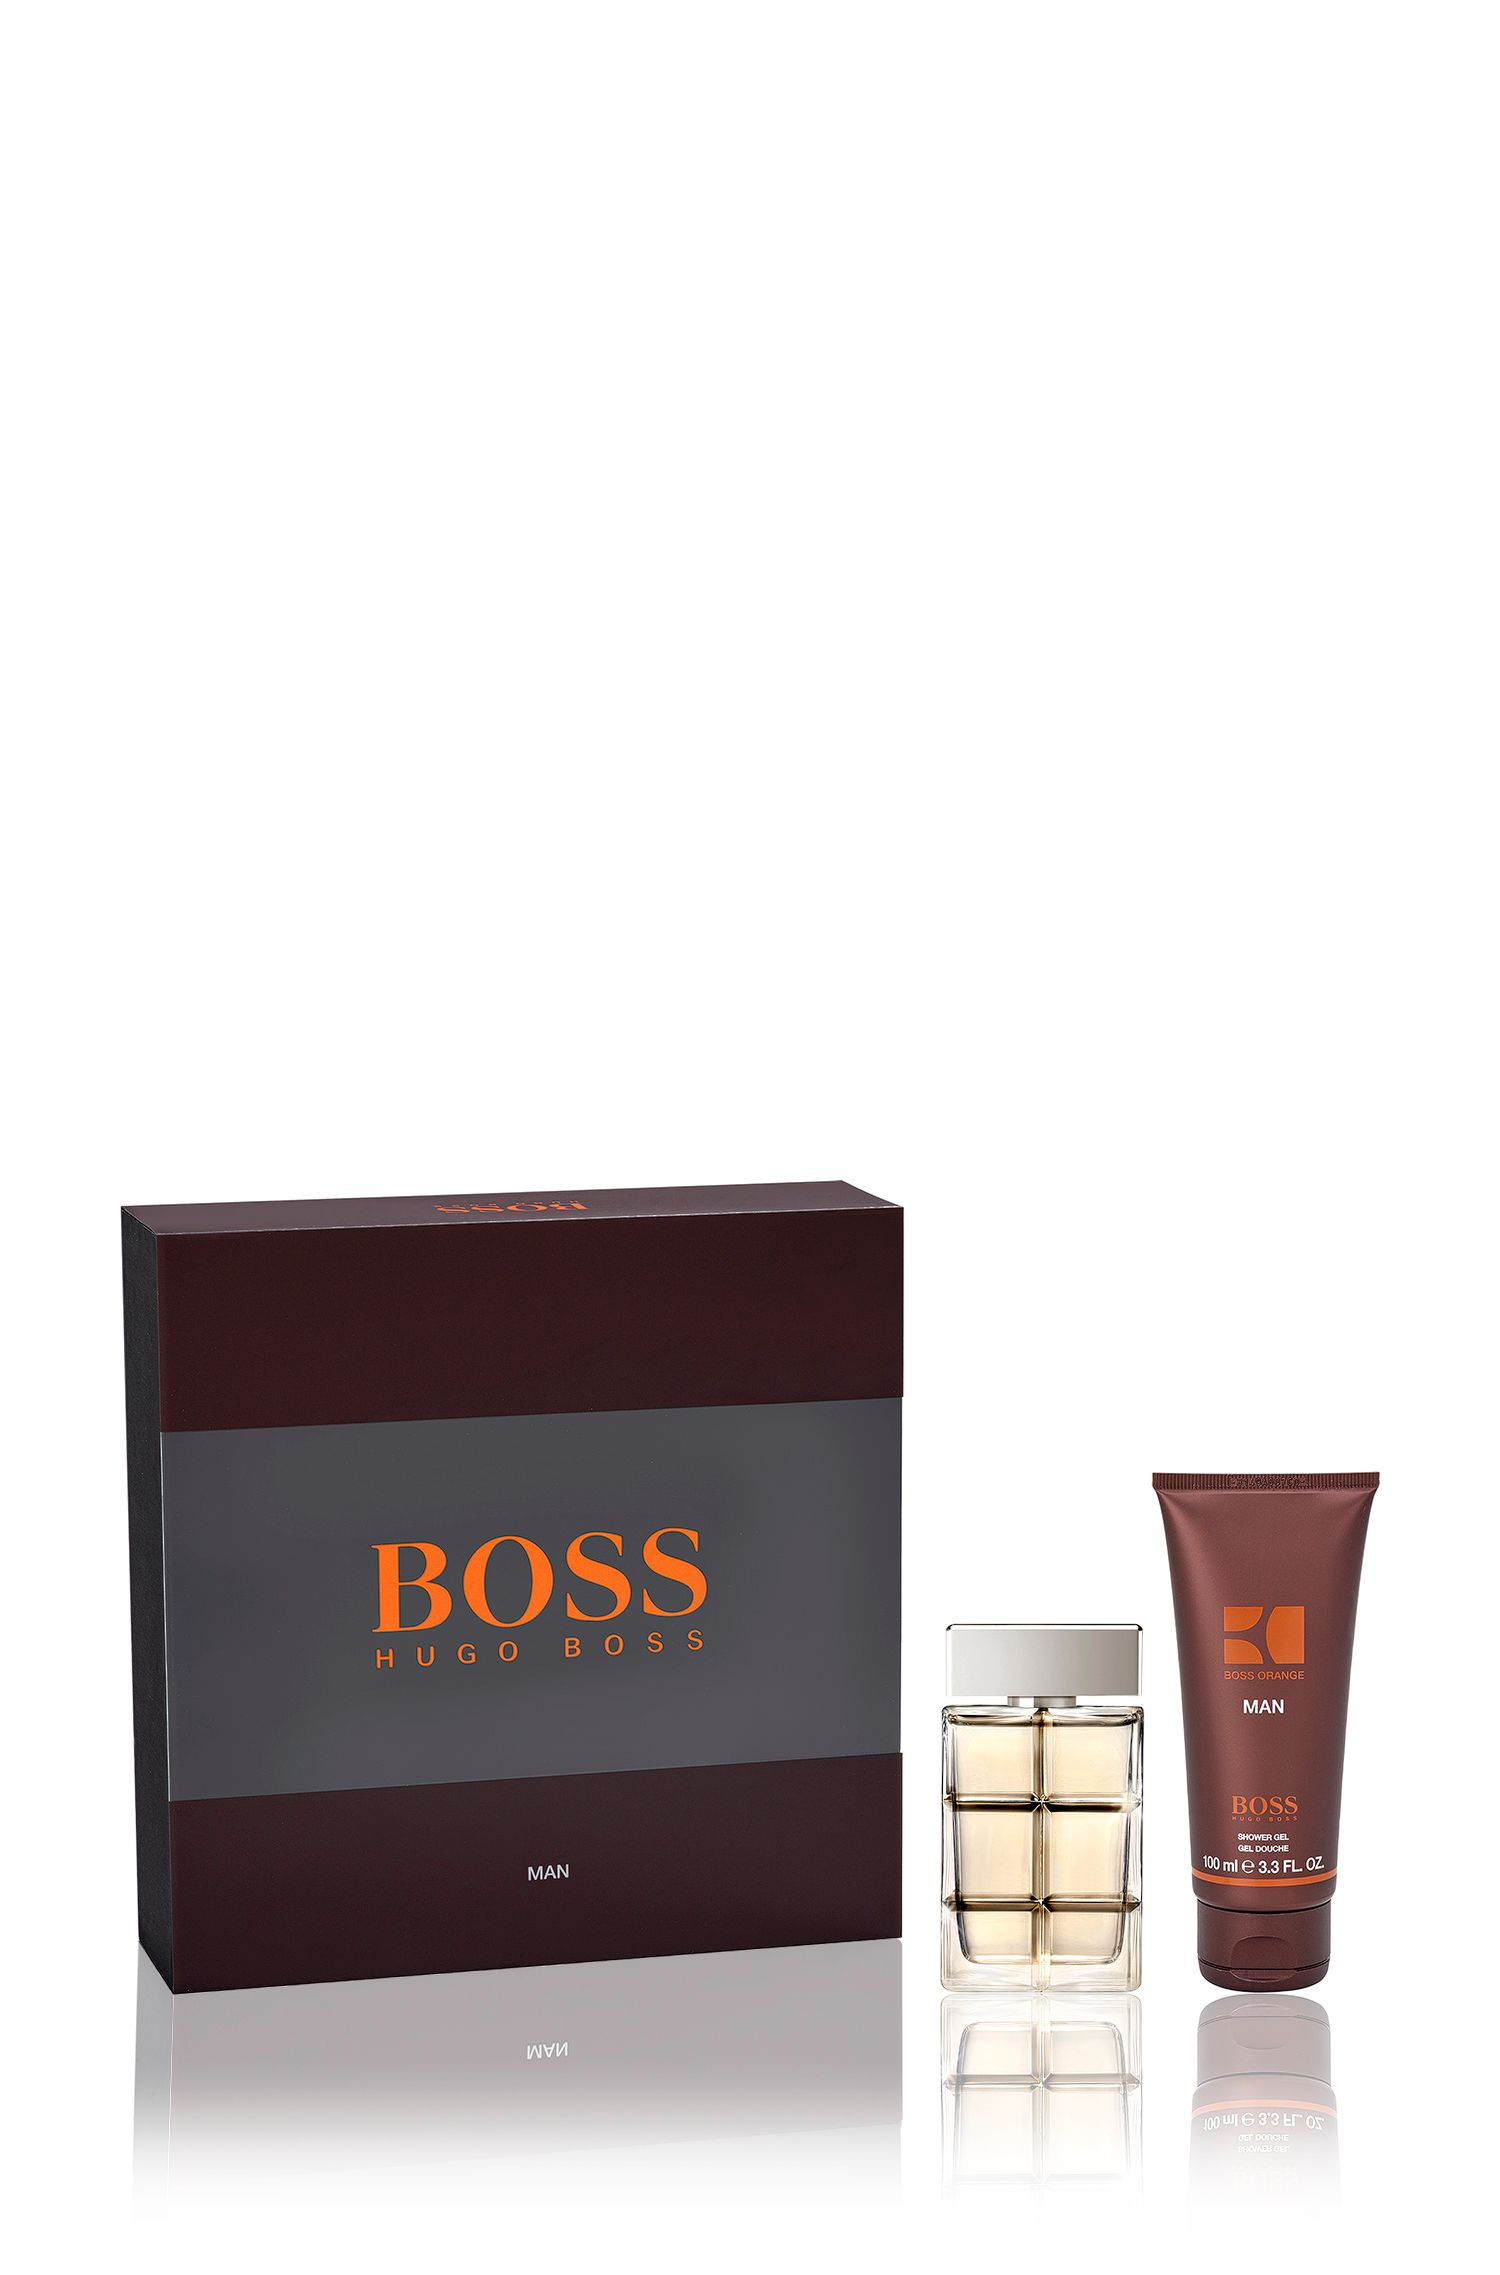 Cadeauset 'BOSS Orange Man' met eau de toilette 40 ml en douchegel